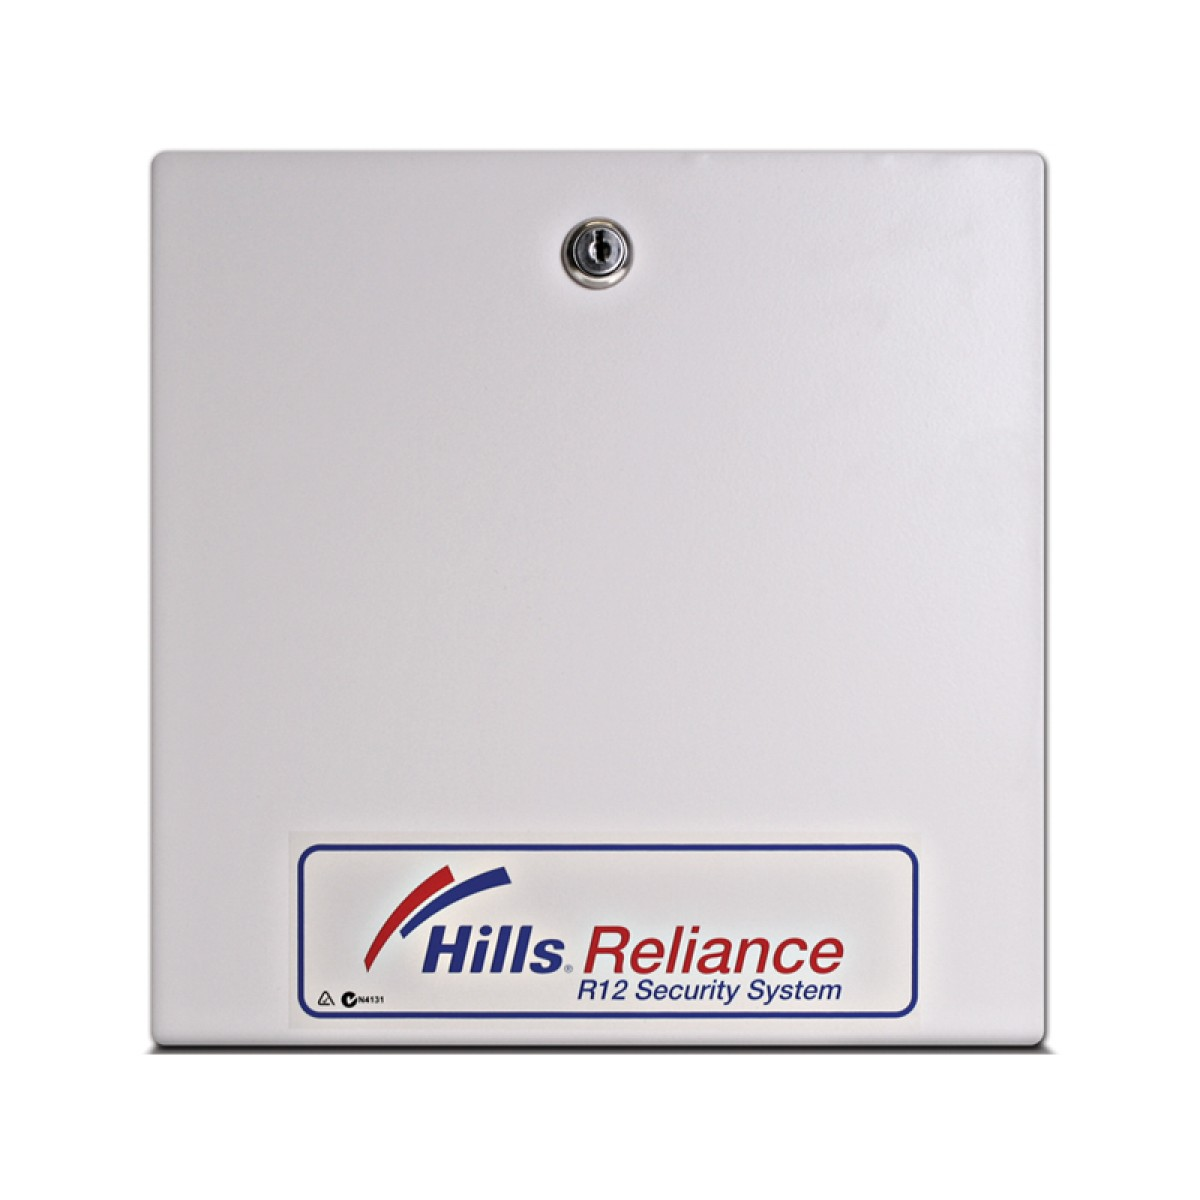 Hills Reliance R12-S4142 R12 Control Panel